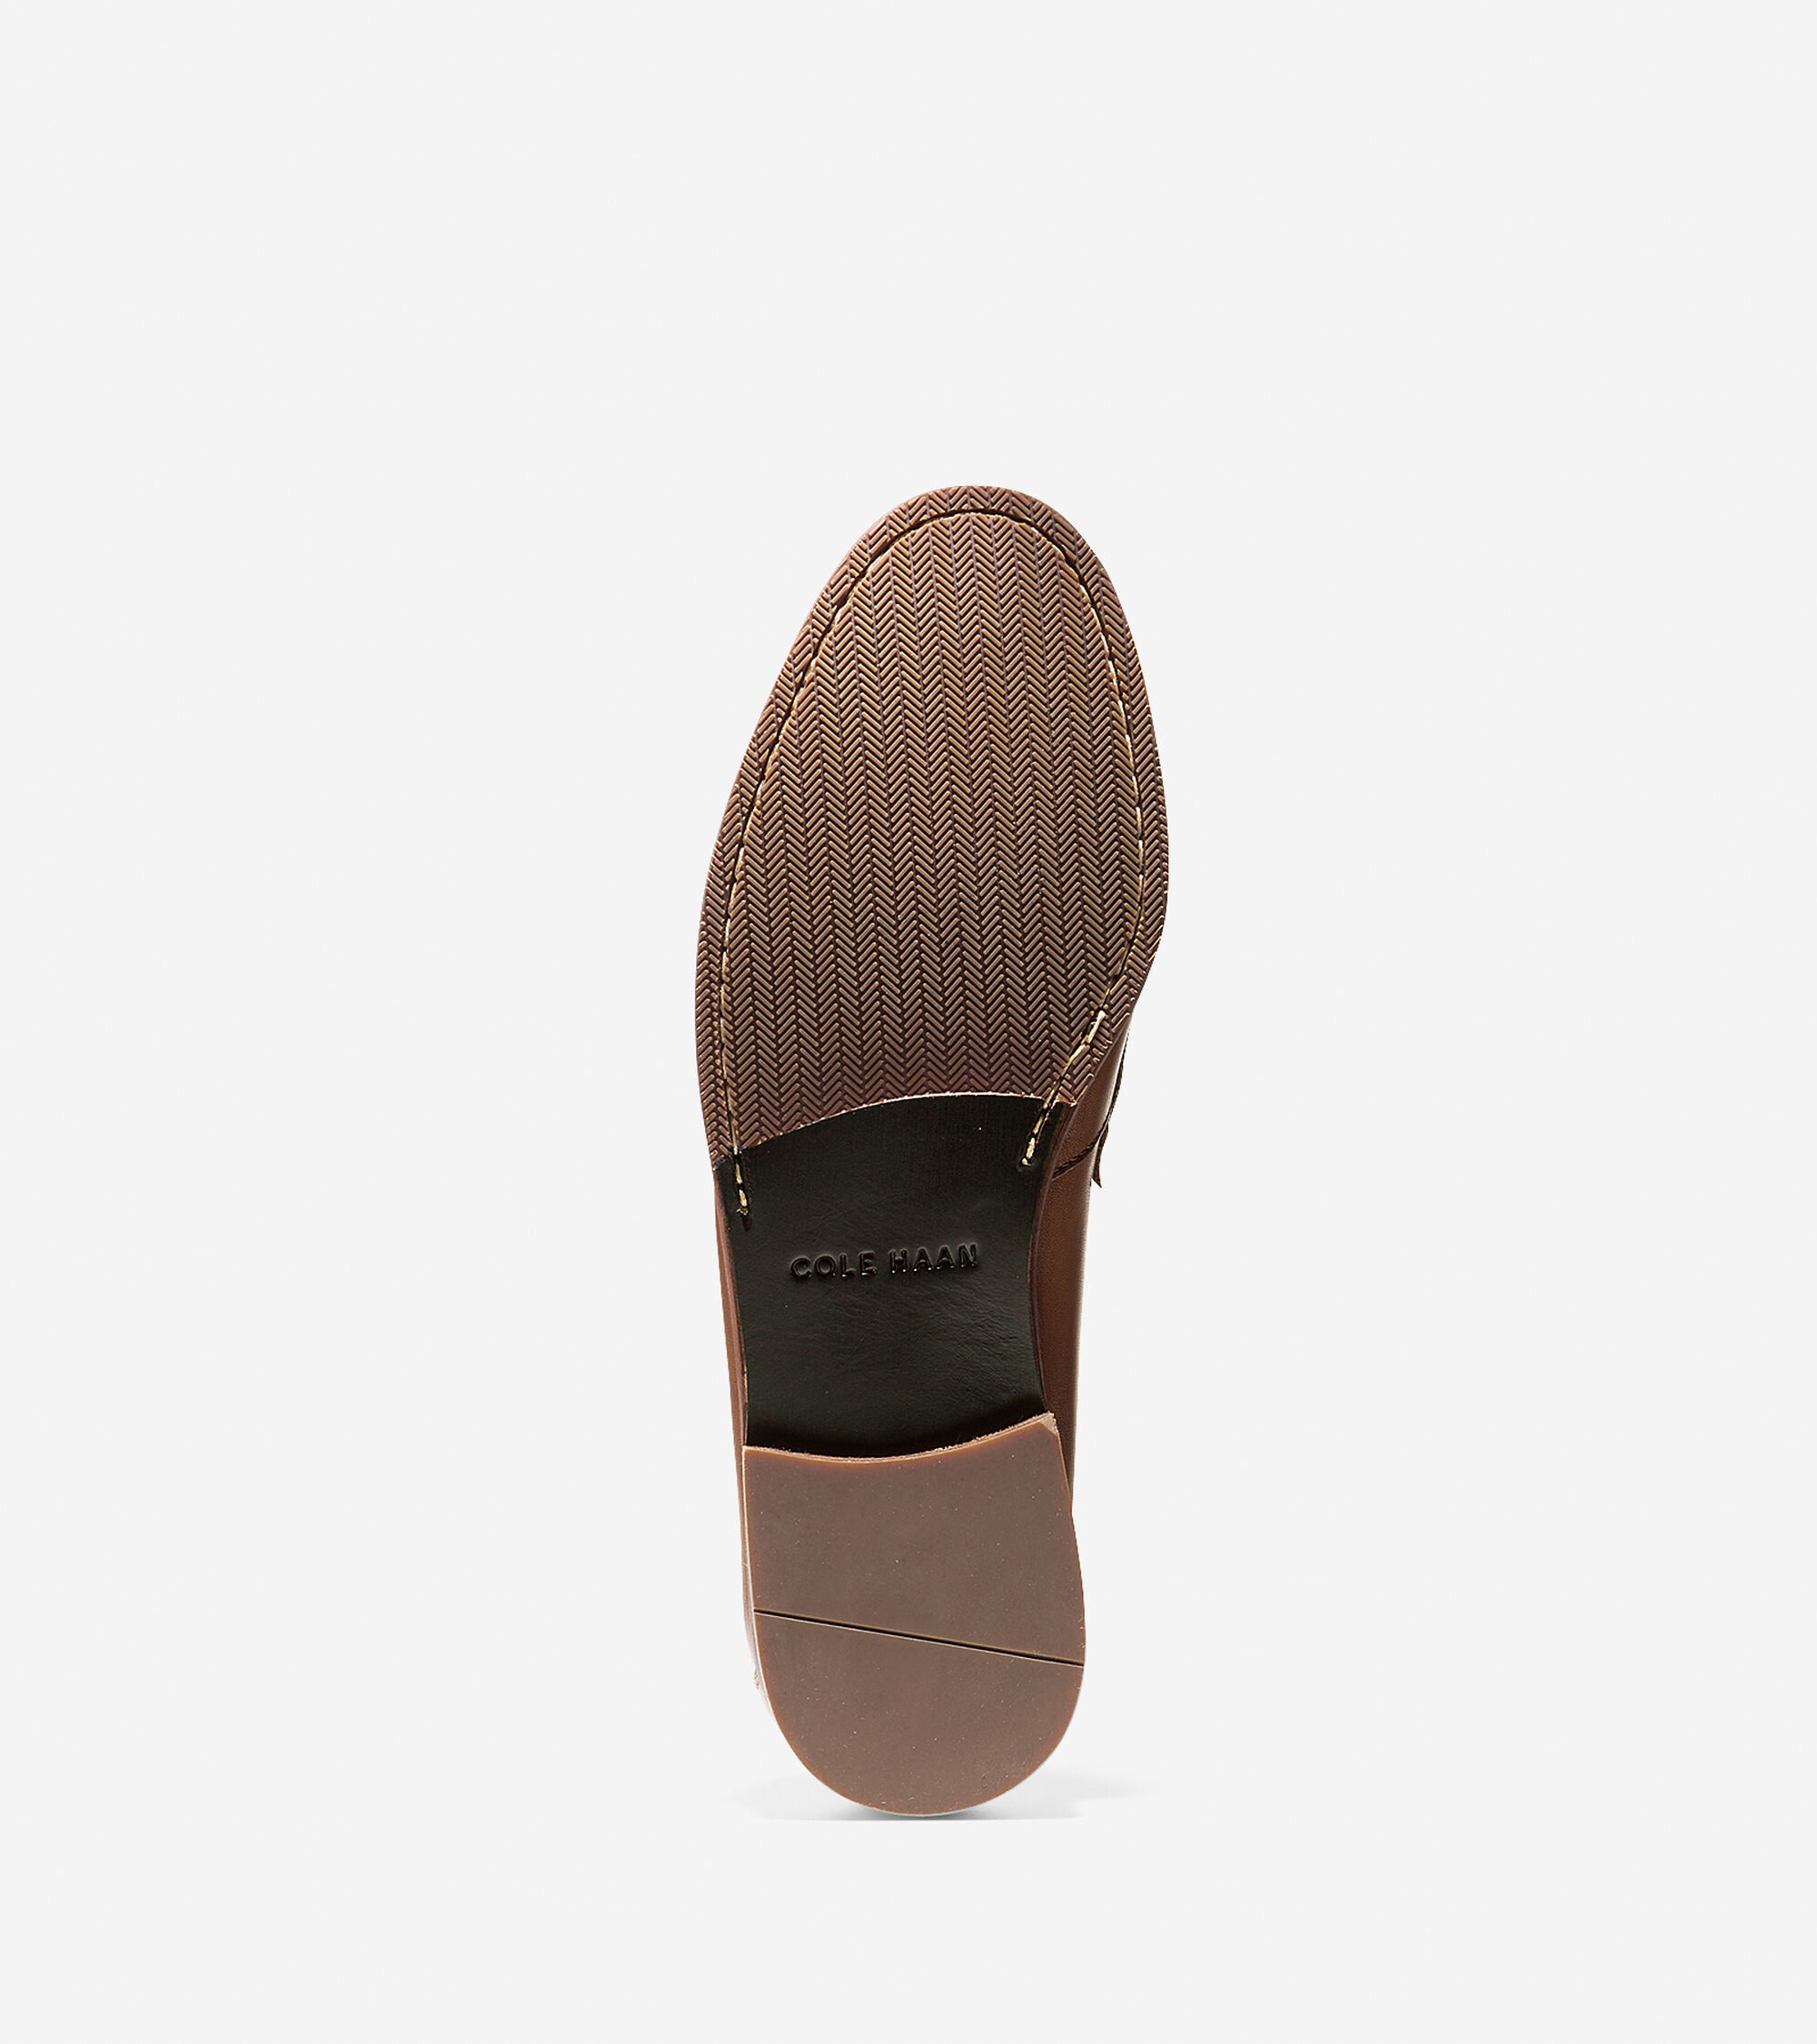 34c9ca6ca4c ... Ascot Penny Loafer  Ascot Penny Loafer